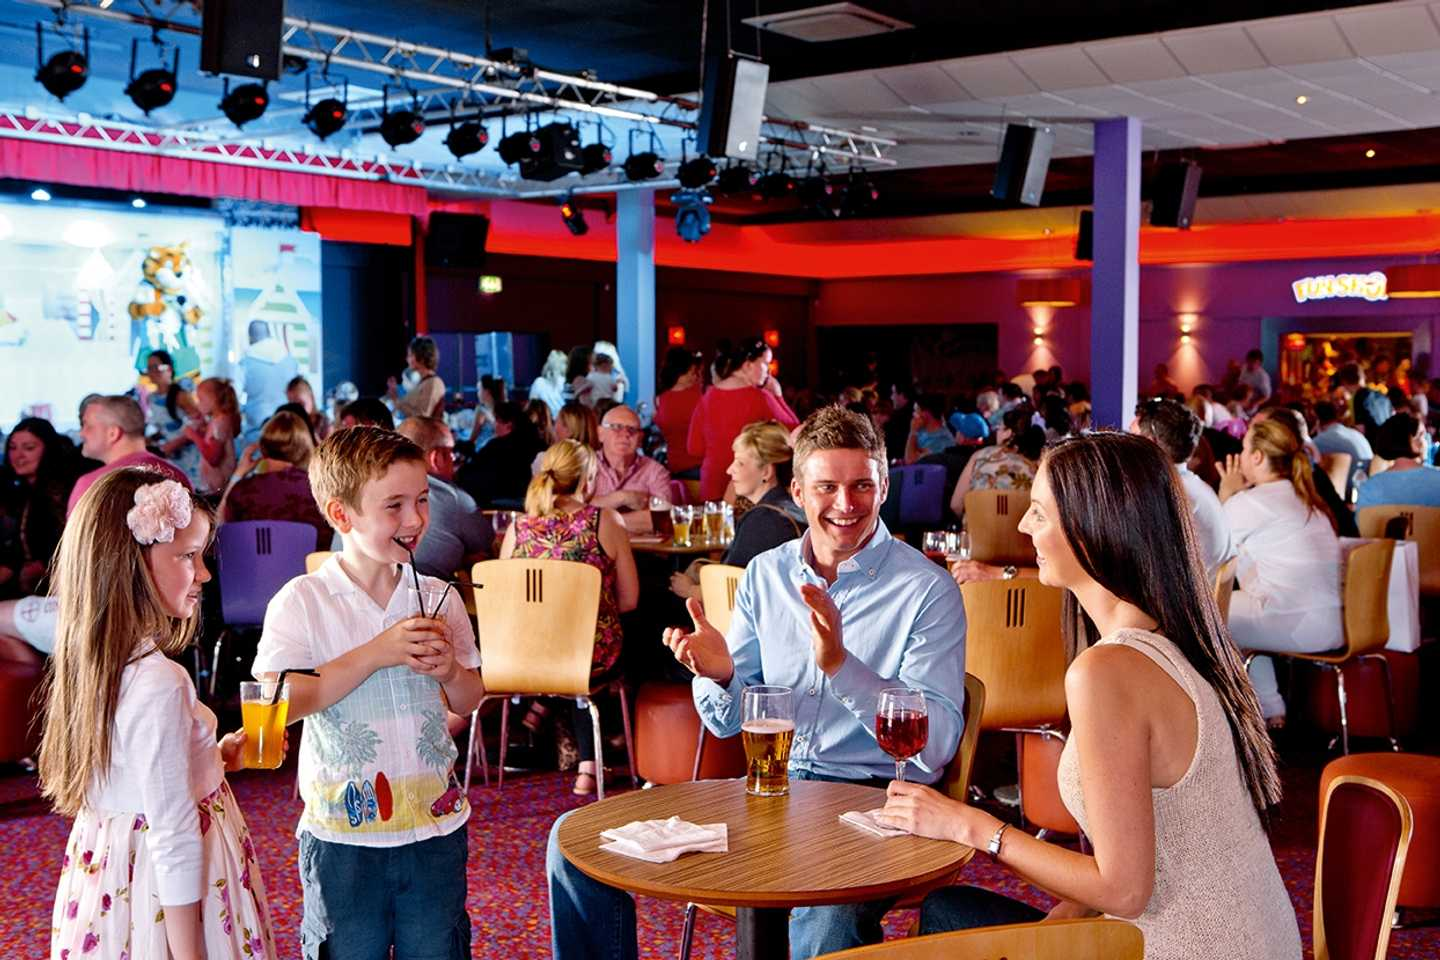 A family clapping at the evening entertainment at our ShowBar